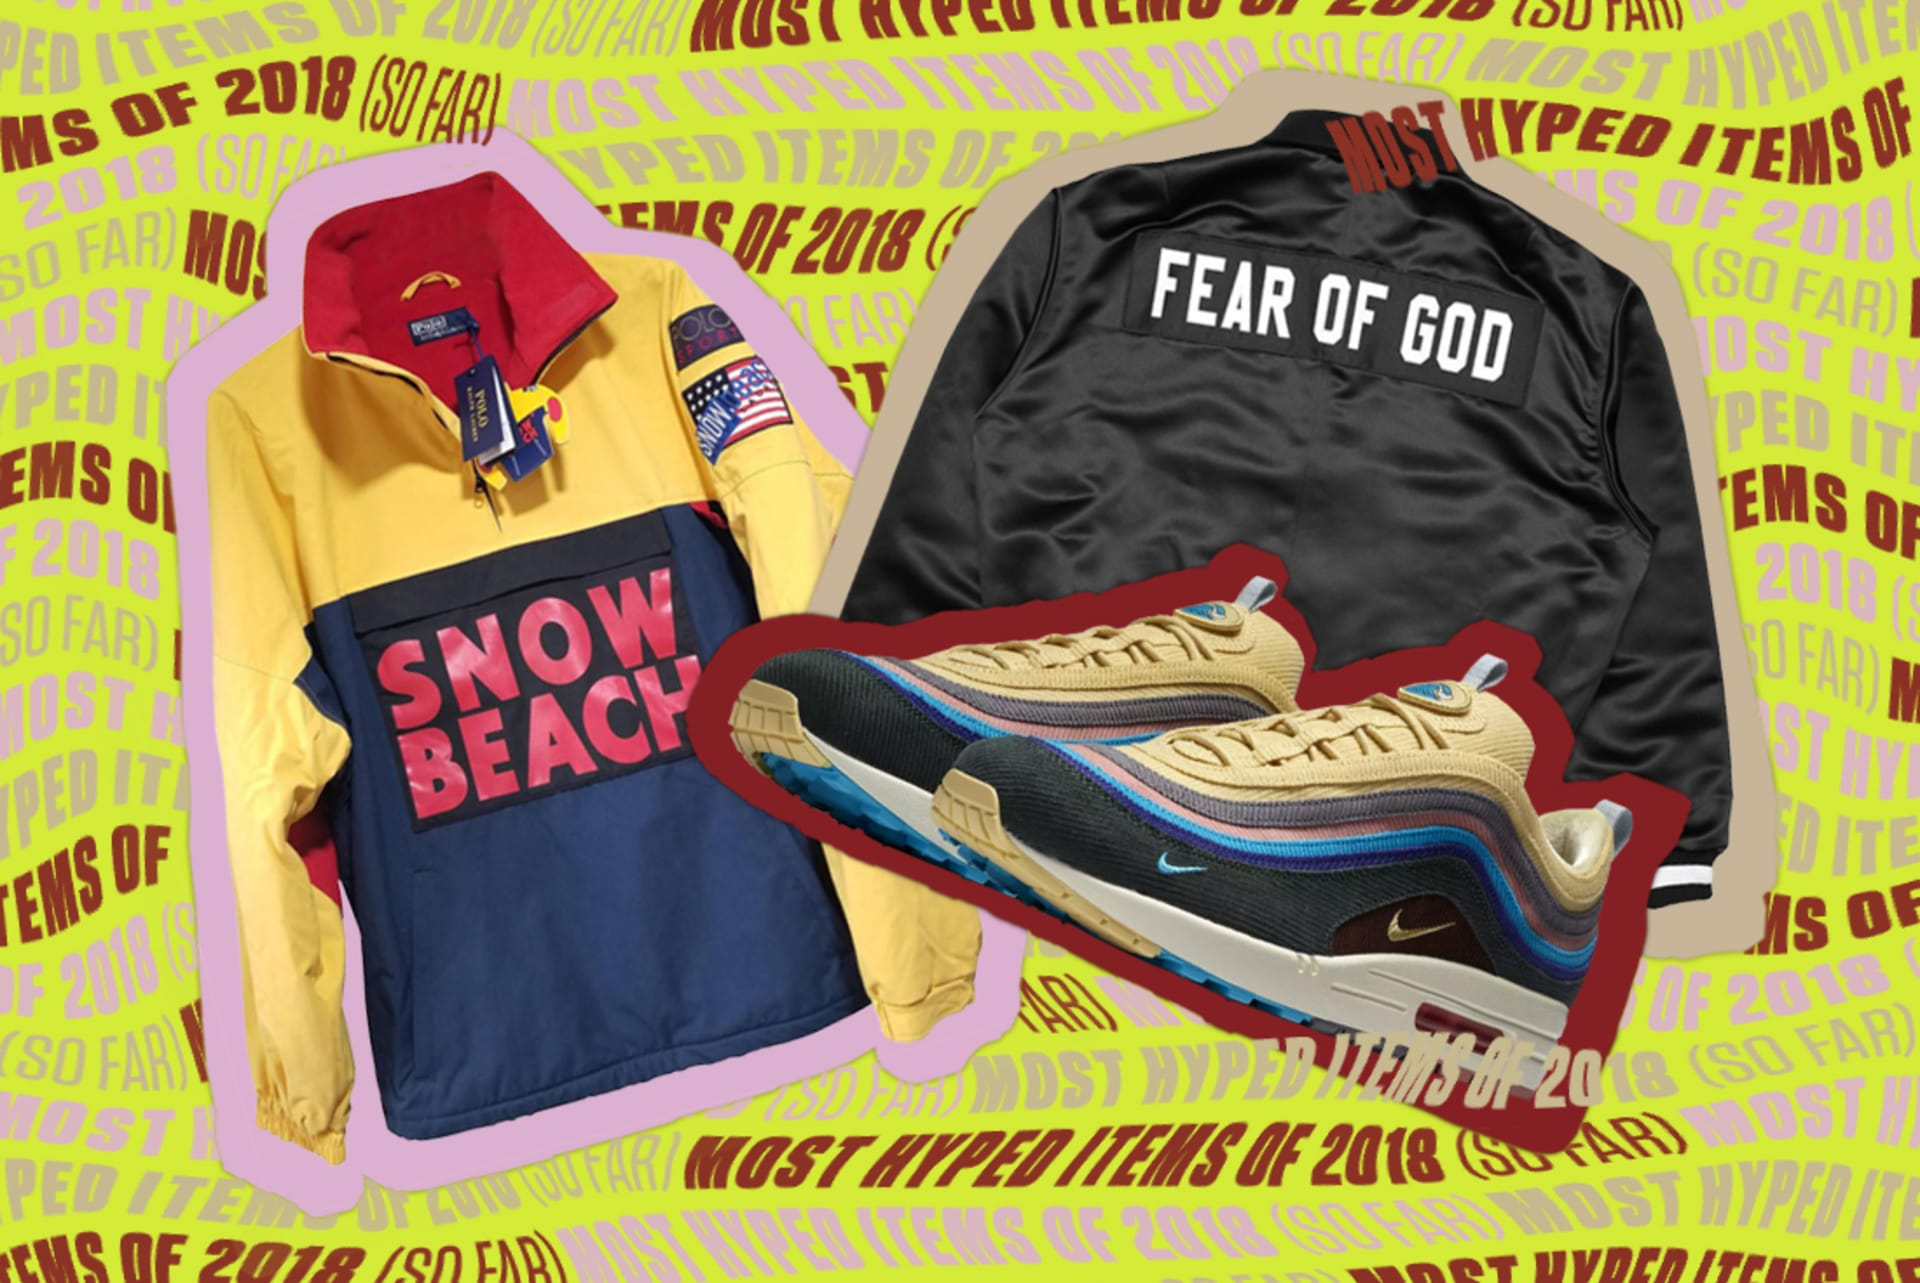 Most Hyped Items of 2018 (So Far)